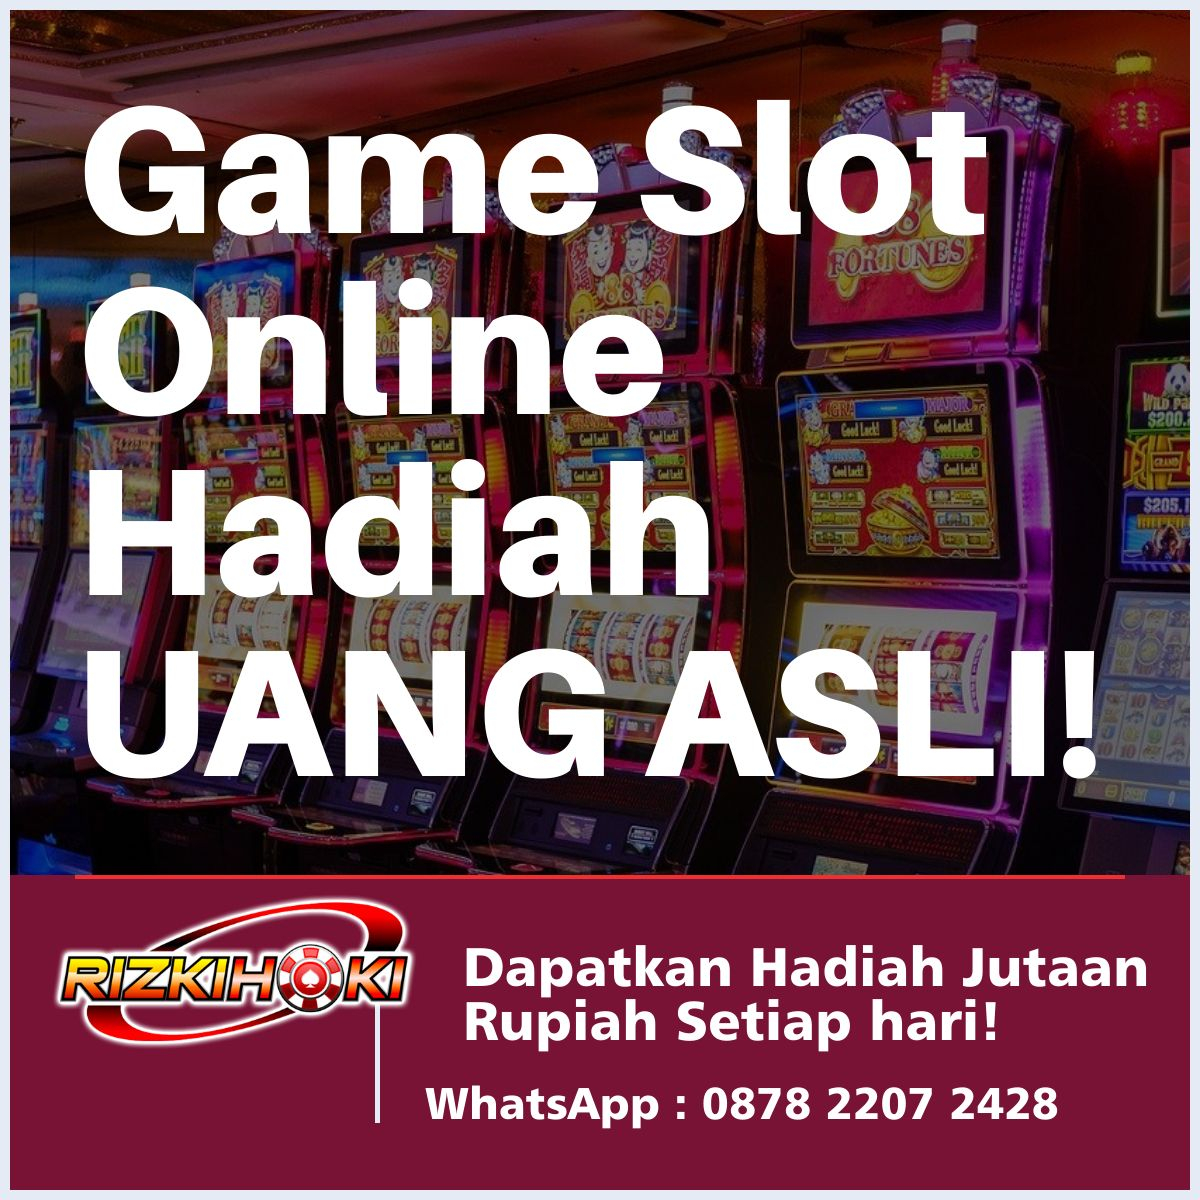 Download Aplikasi Joker123 Di Kecamatan Sebulu